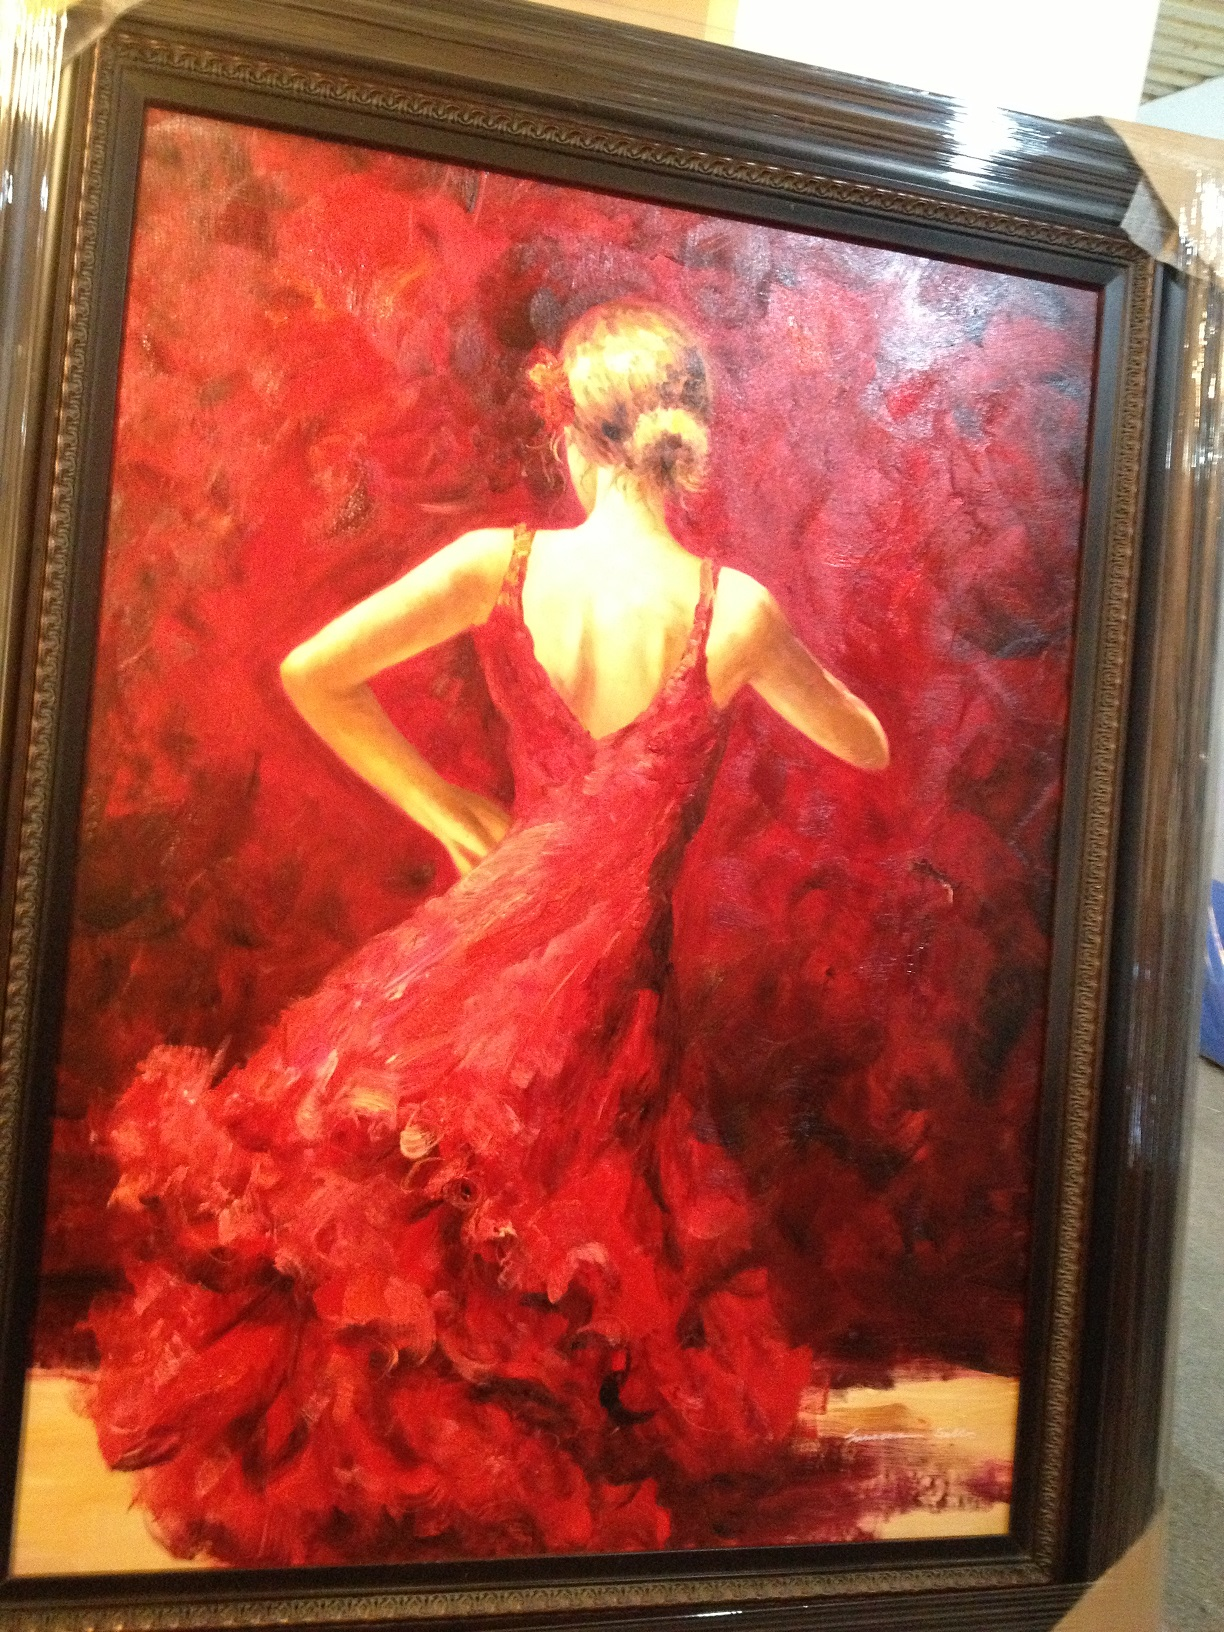 OIL PAINTING WITH FRAME - LADY IN A RED DRESS